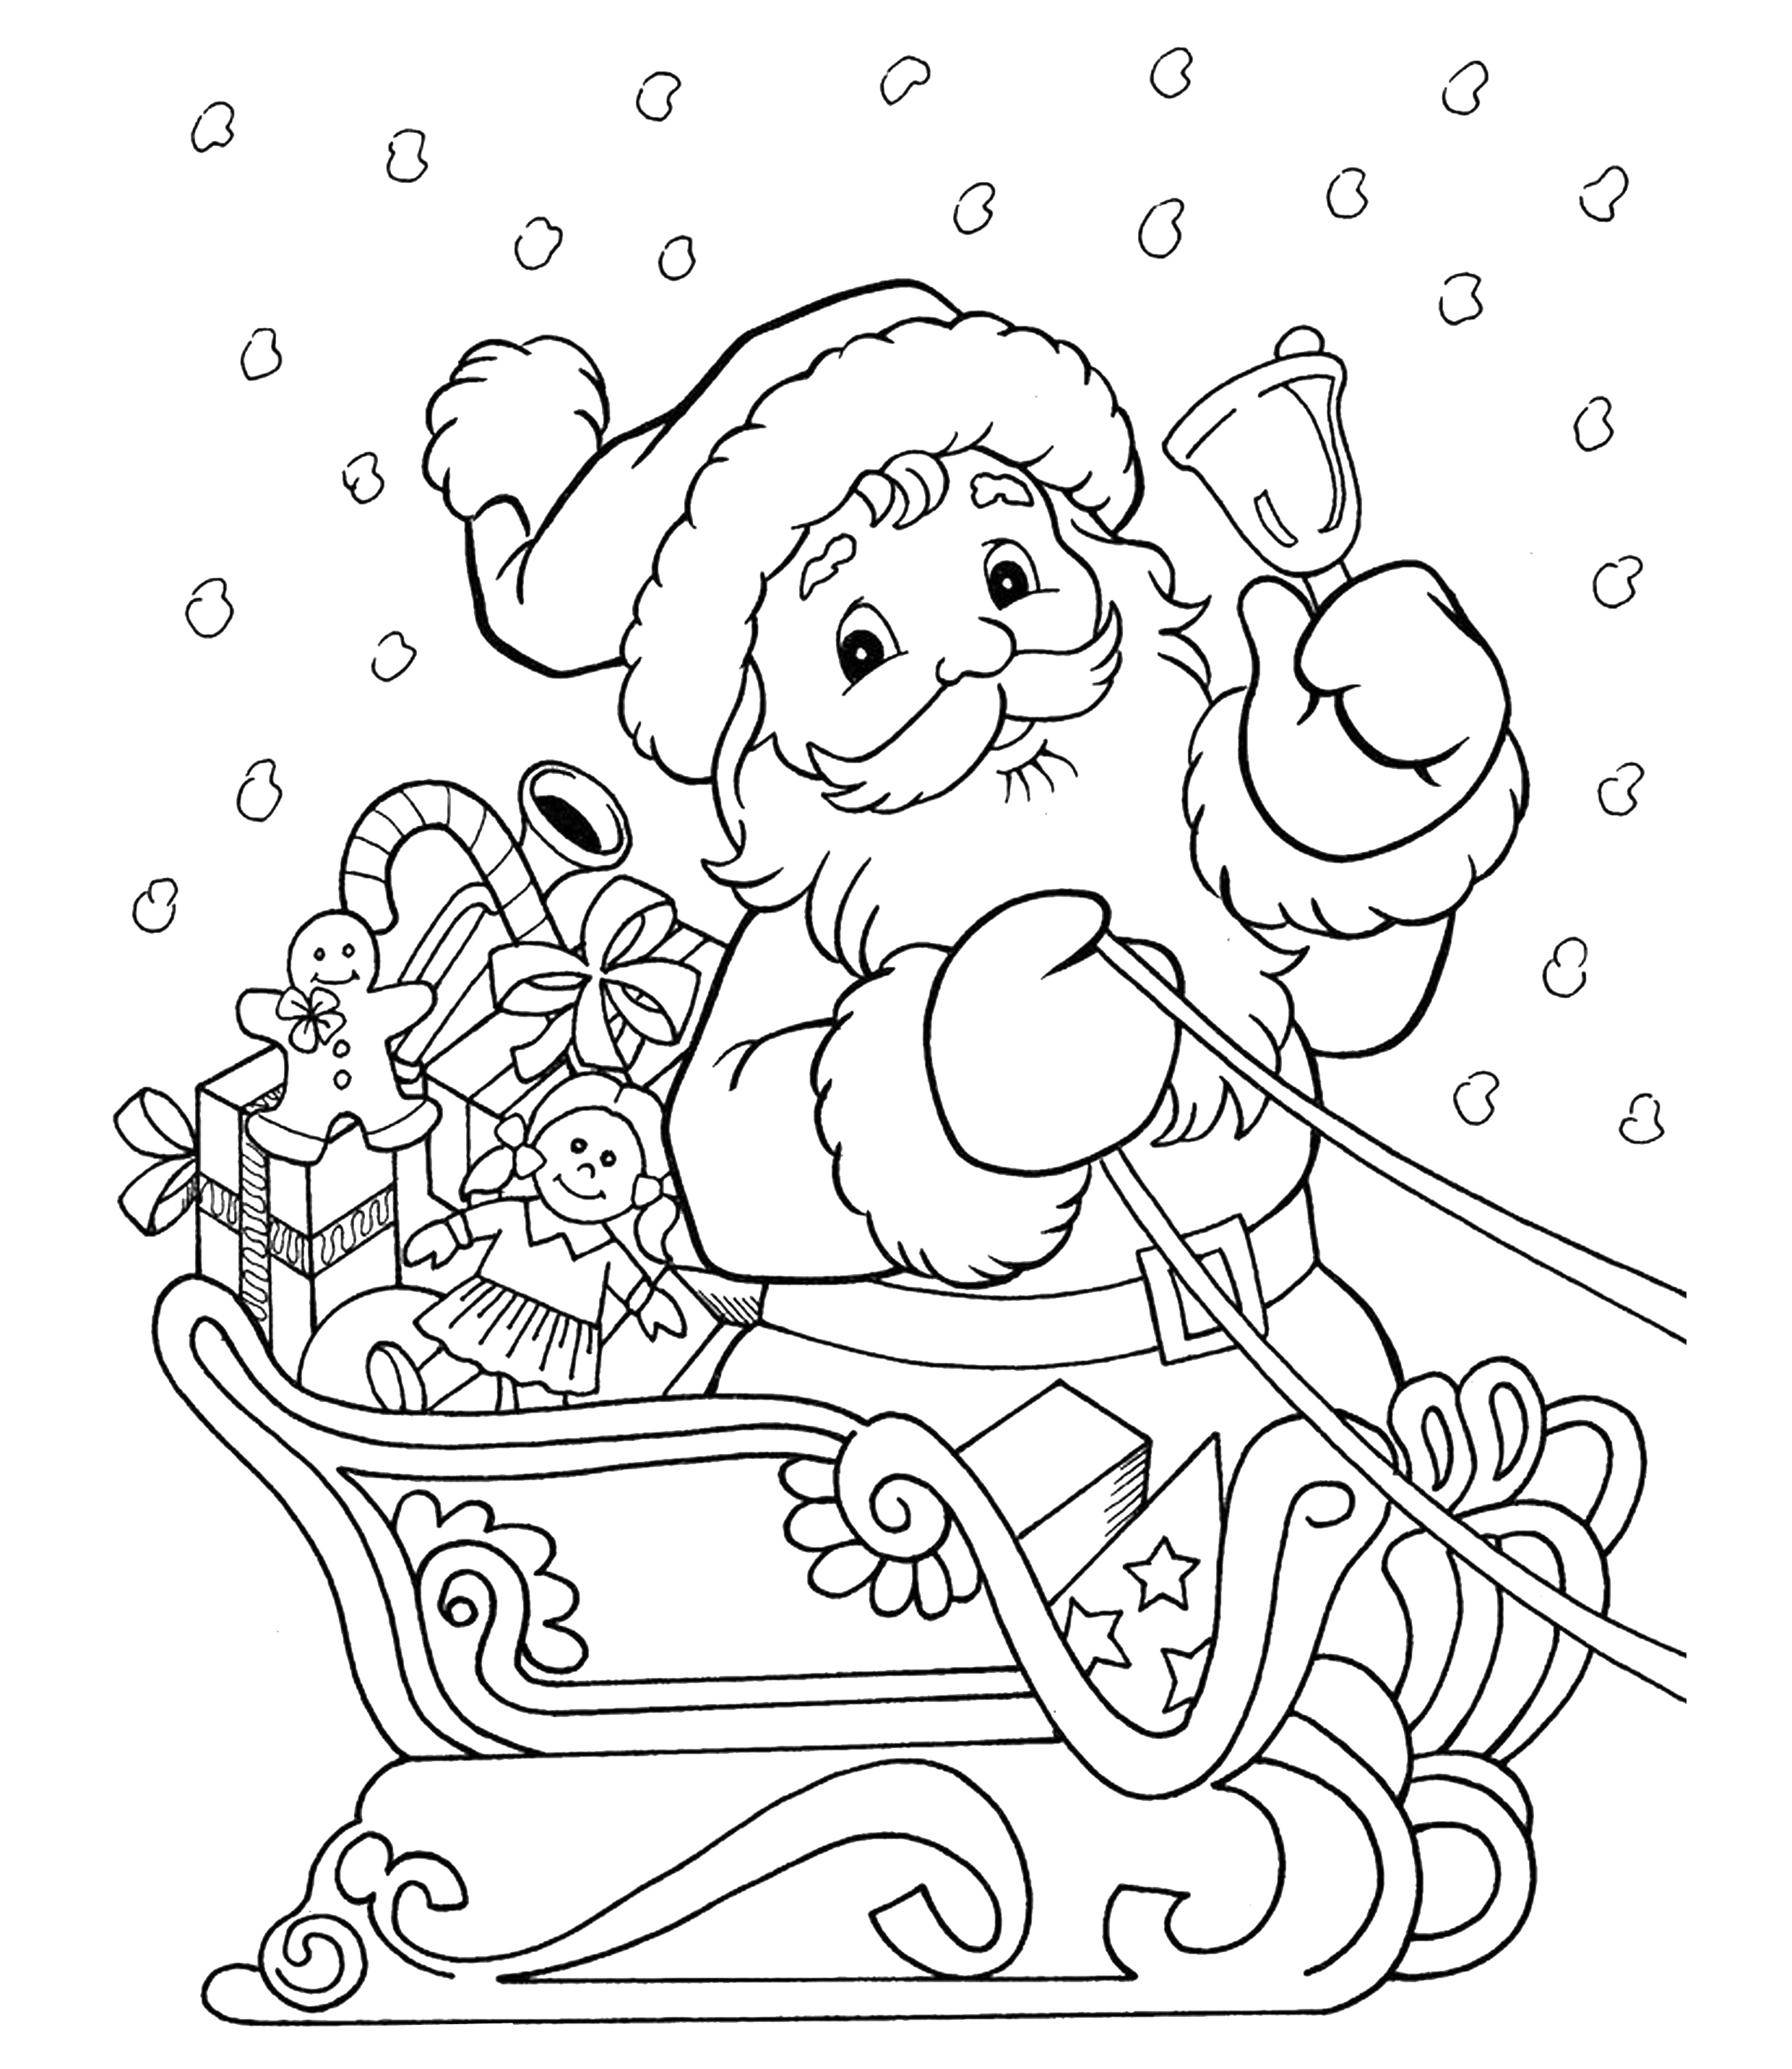 coloring page 2020 2020 colouring competition 2020 page coloring